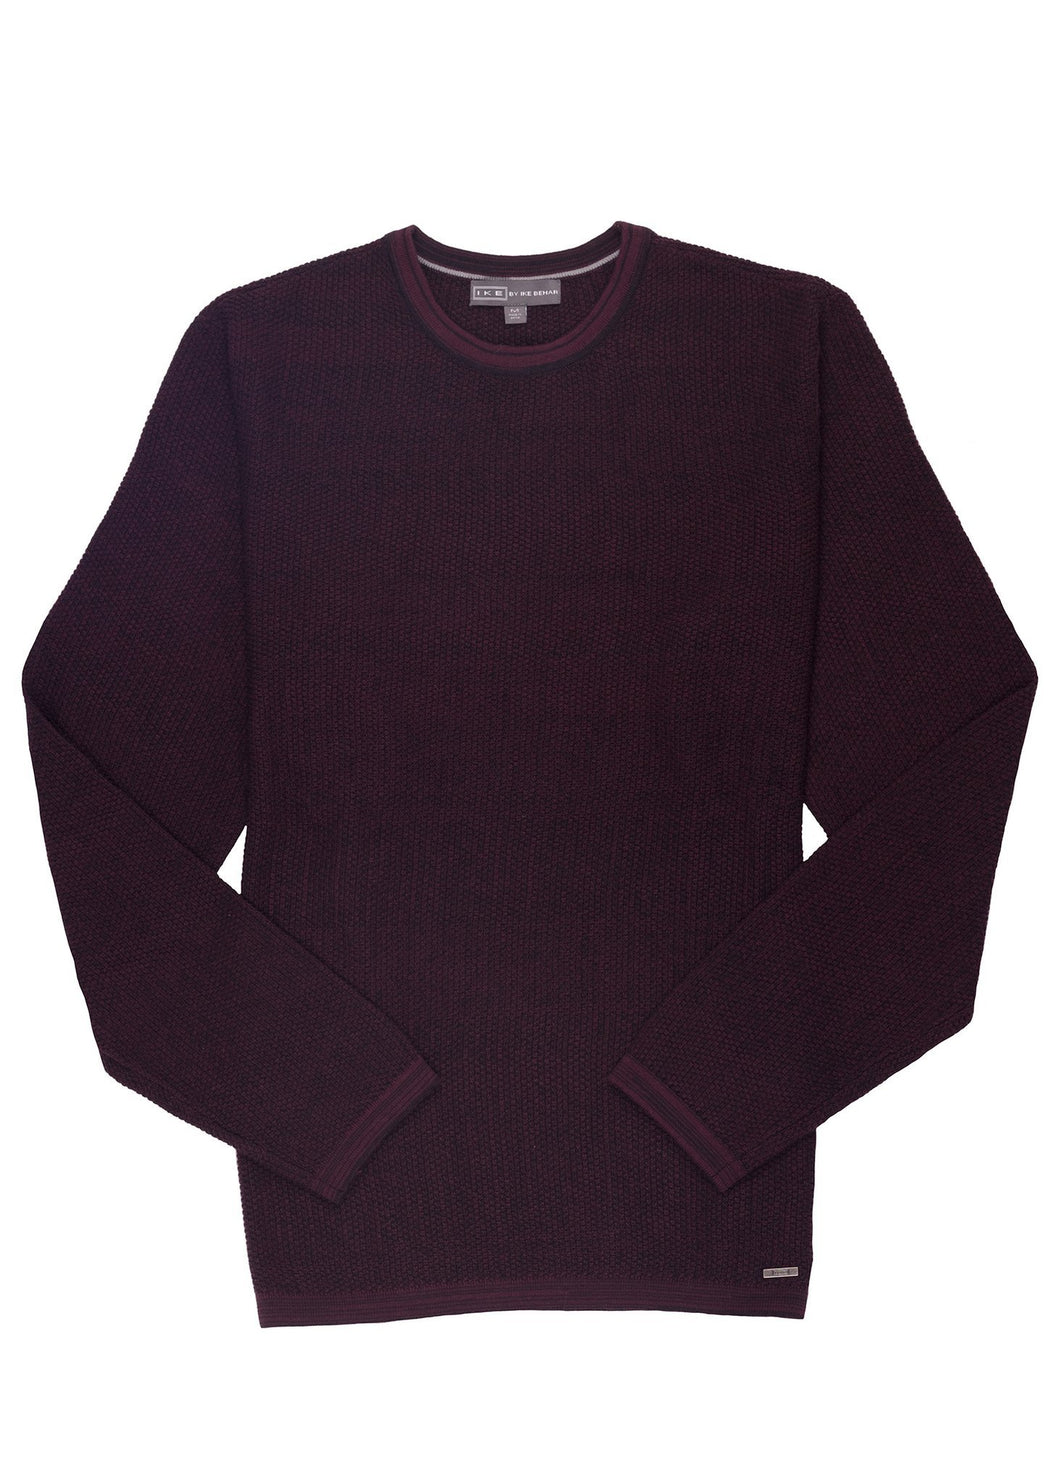 Chile Ike by Ike Behar Cotton Seed Stitched Sweater